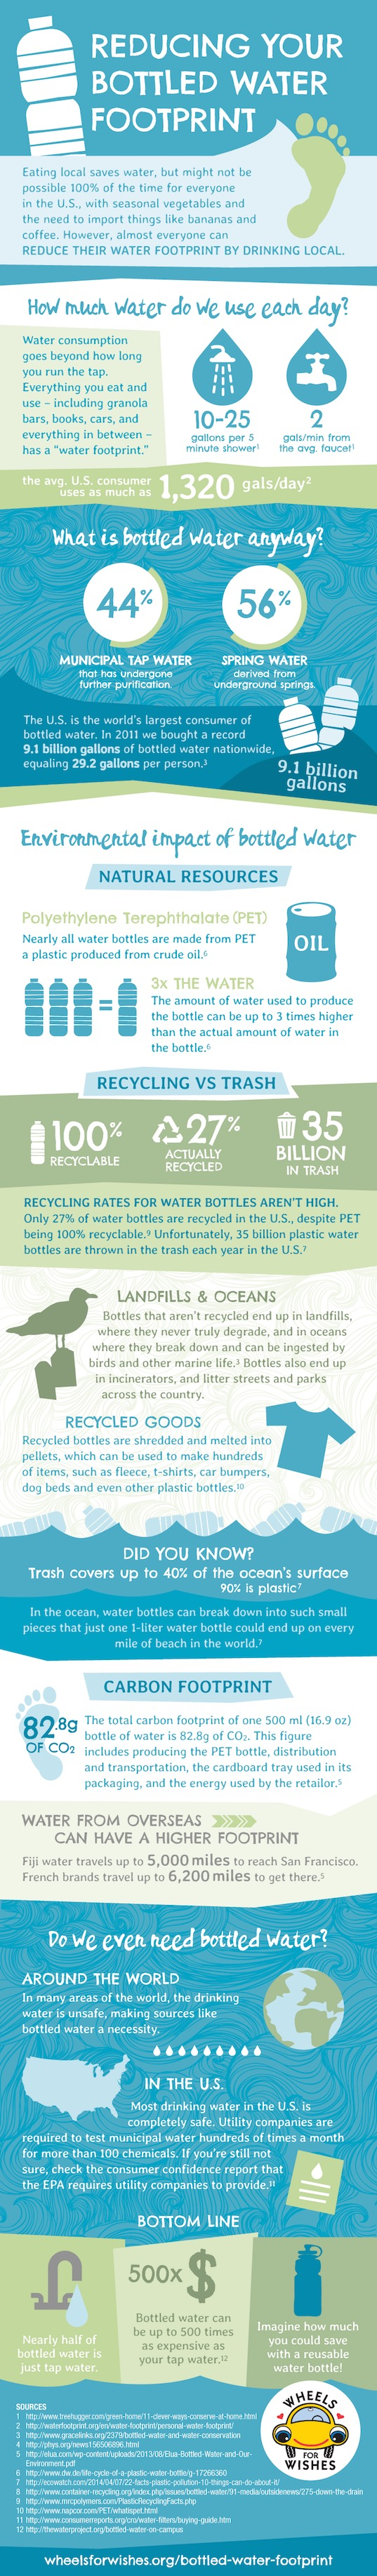 water footprint, infographic, bottled water footprint, bottled water, PET bottles, bottled water trash, reader submitted content